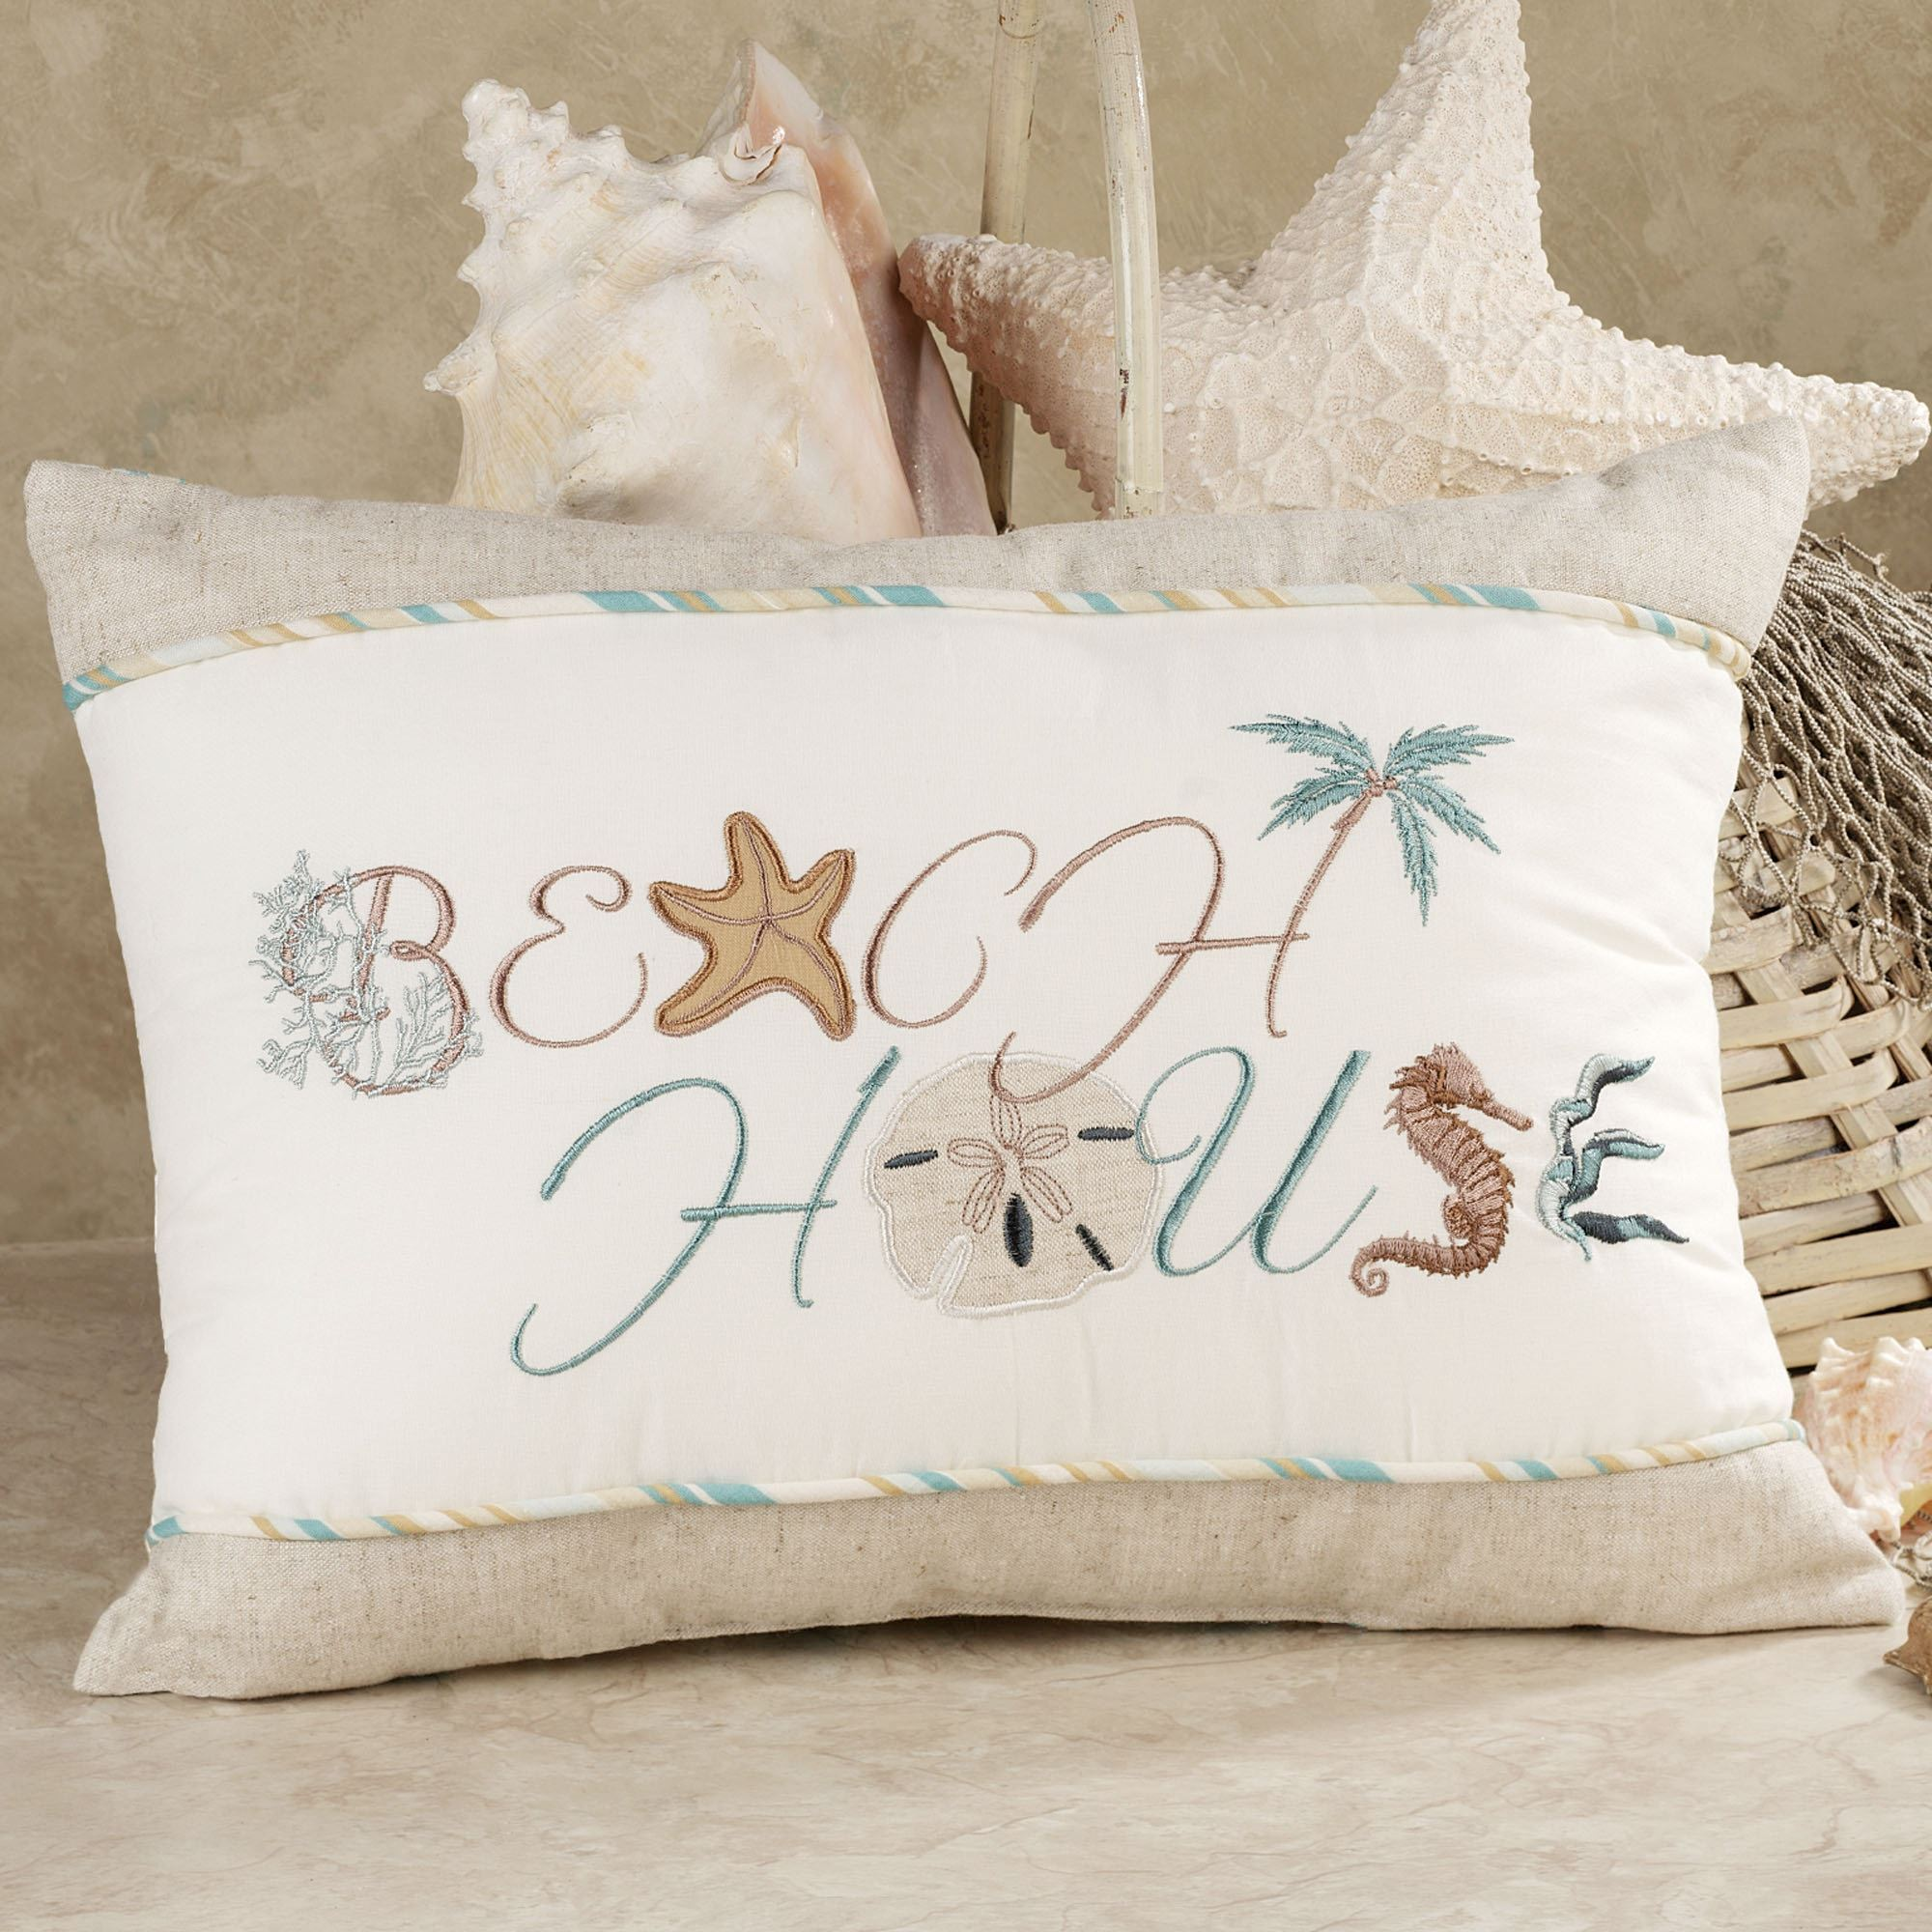 front com beach view pillows tangalle pillow sunnylife grande hulule collections bikini